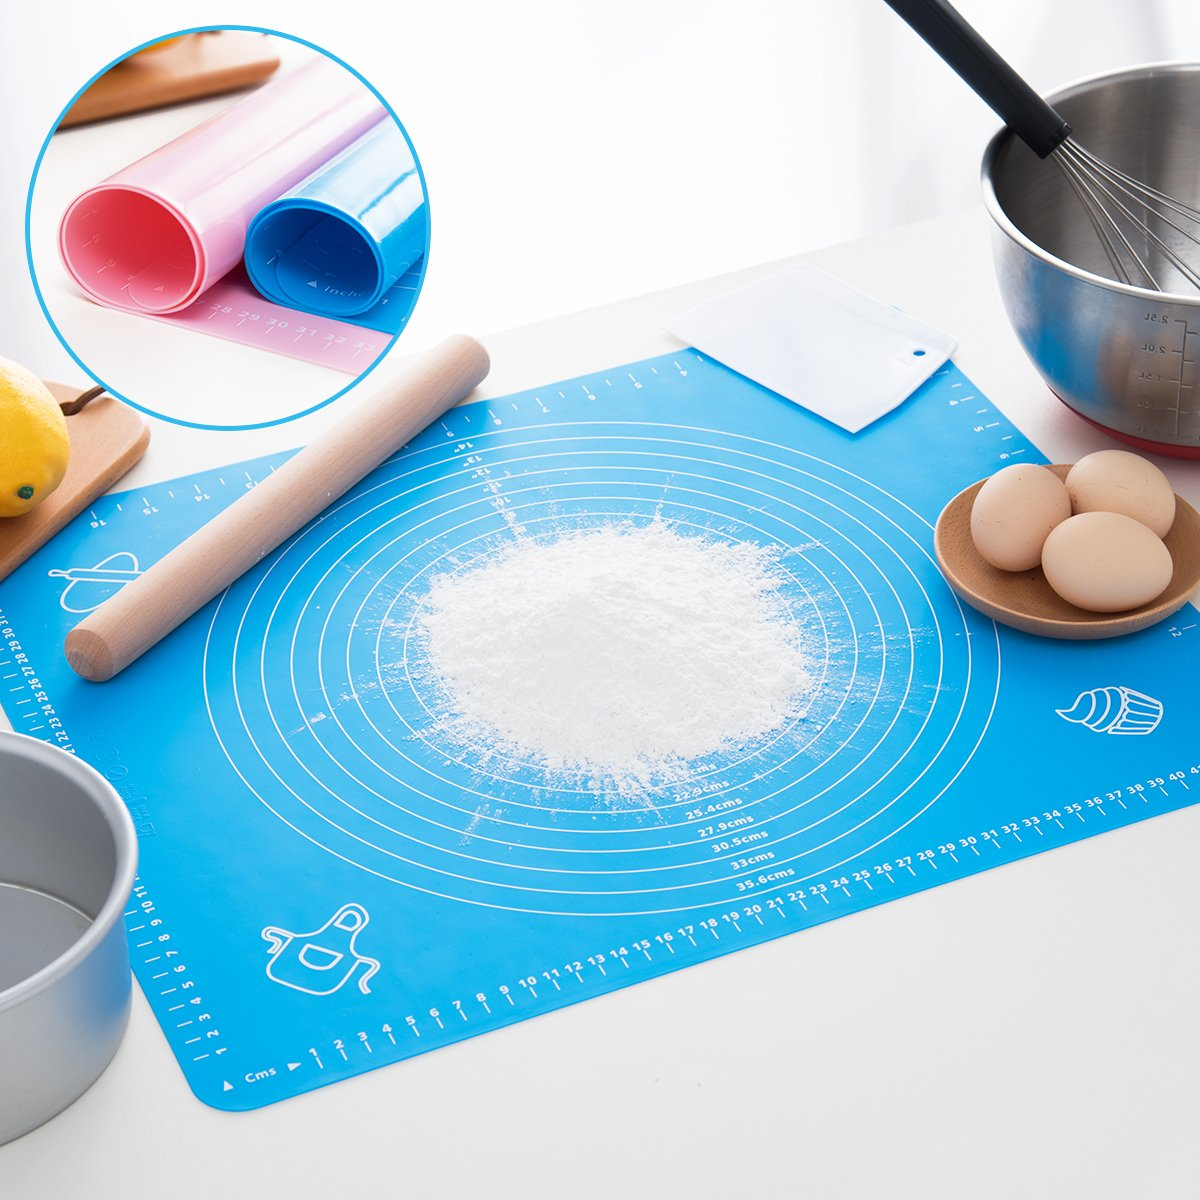 Silicone Baking Mat for Pastry Rolling with Measurements, Liner Heat Resistance Table Placemat Pad Pastry Board, Reusable Non-Stick Silicone Baking Mat for Housewife, Cooking Enthusiasts by LIMNUO (Image #6)